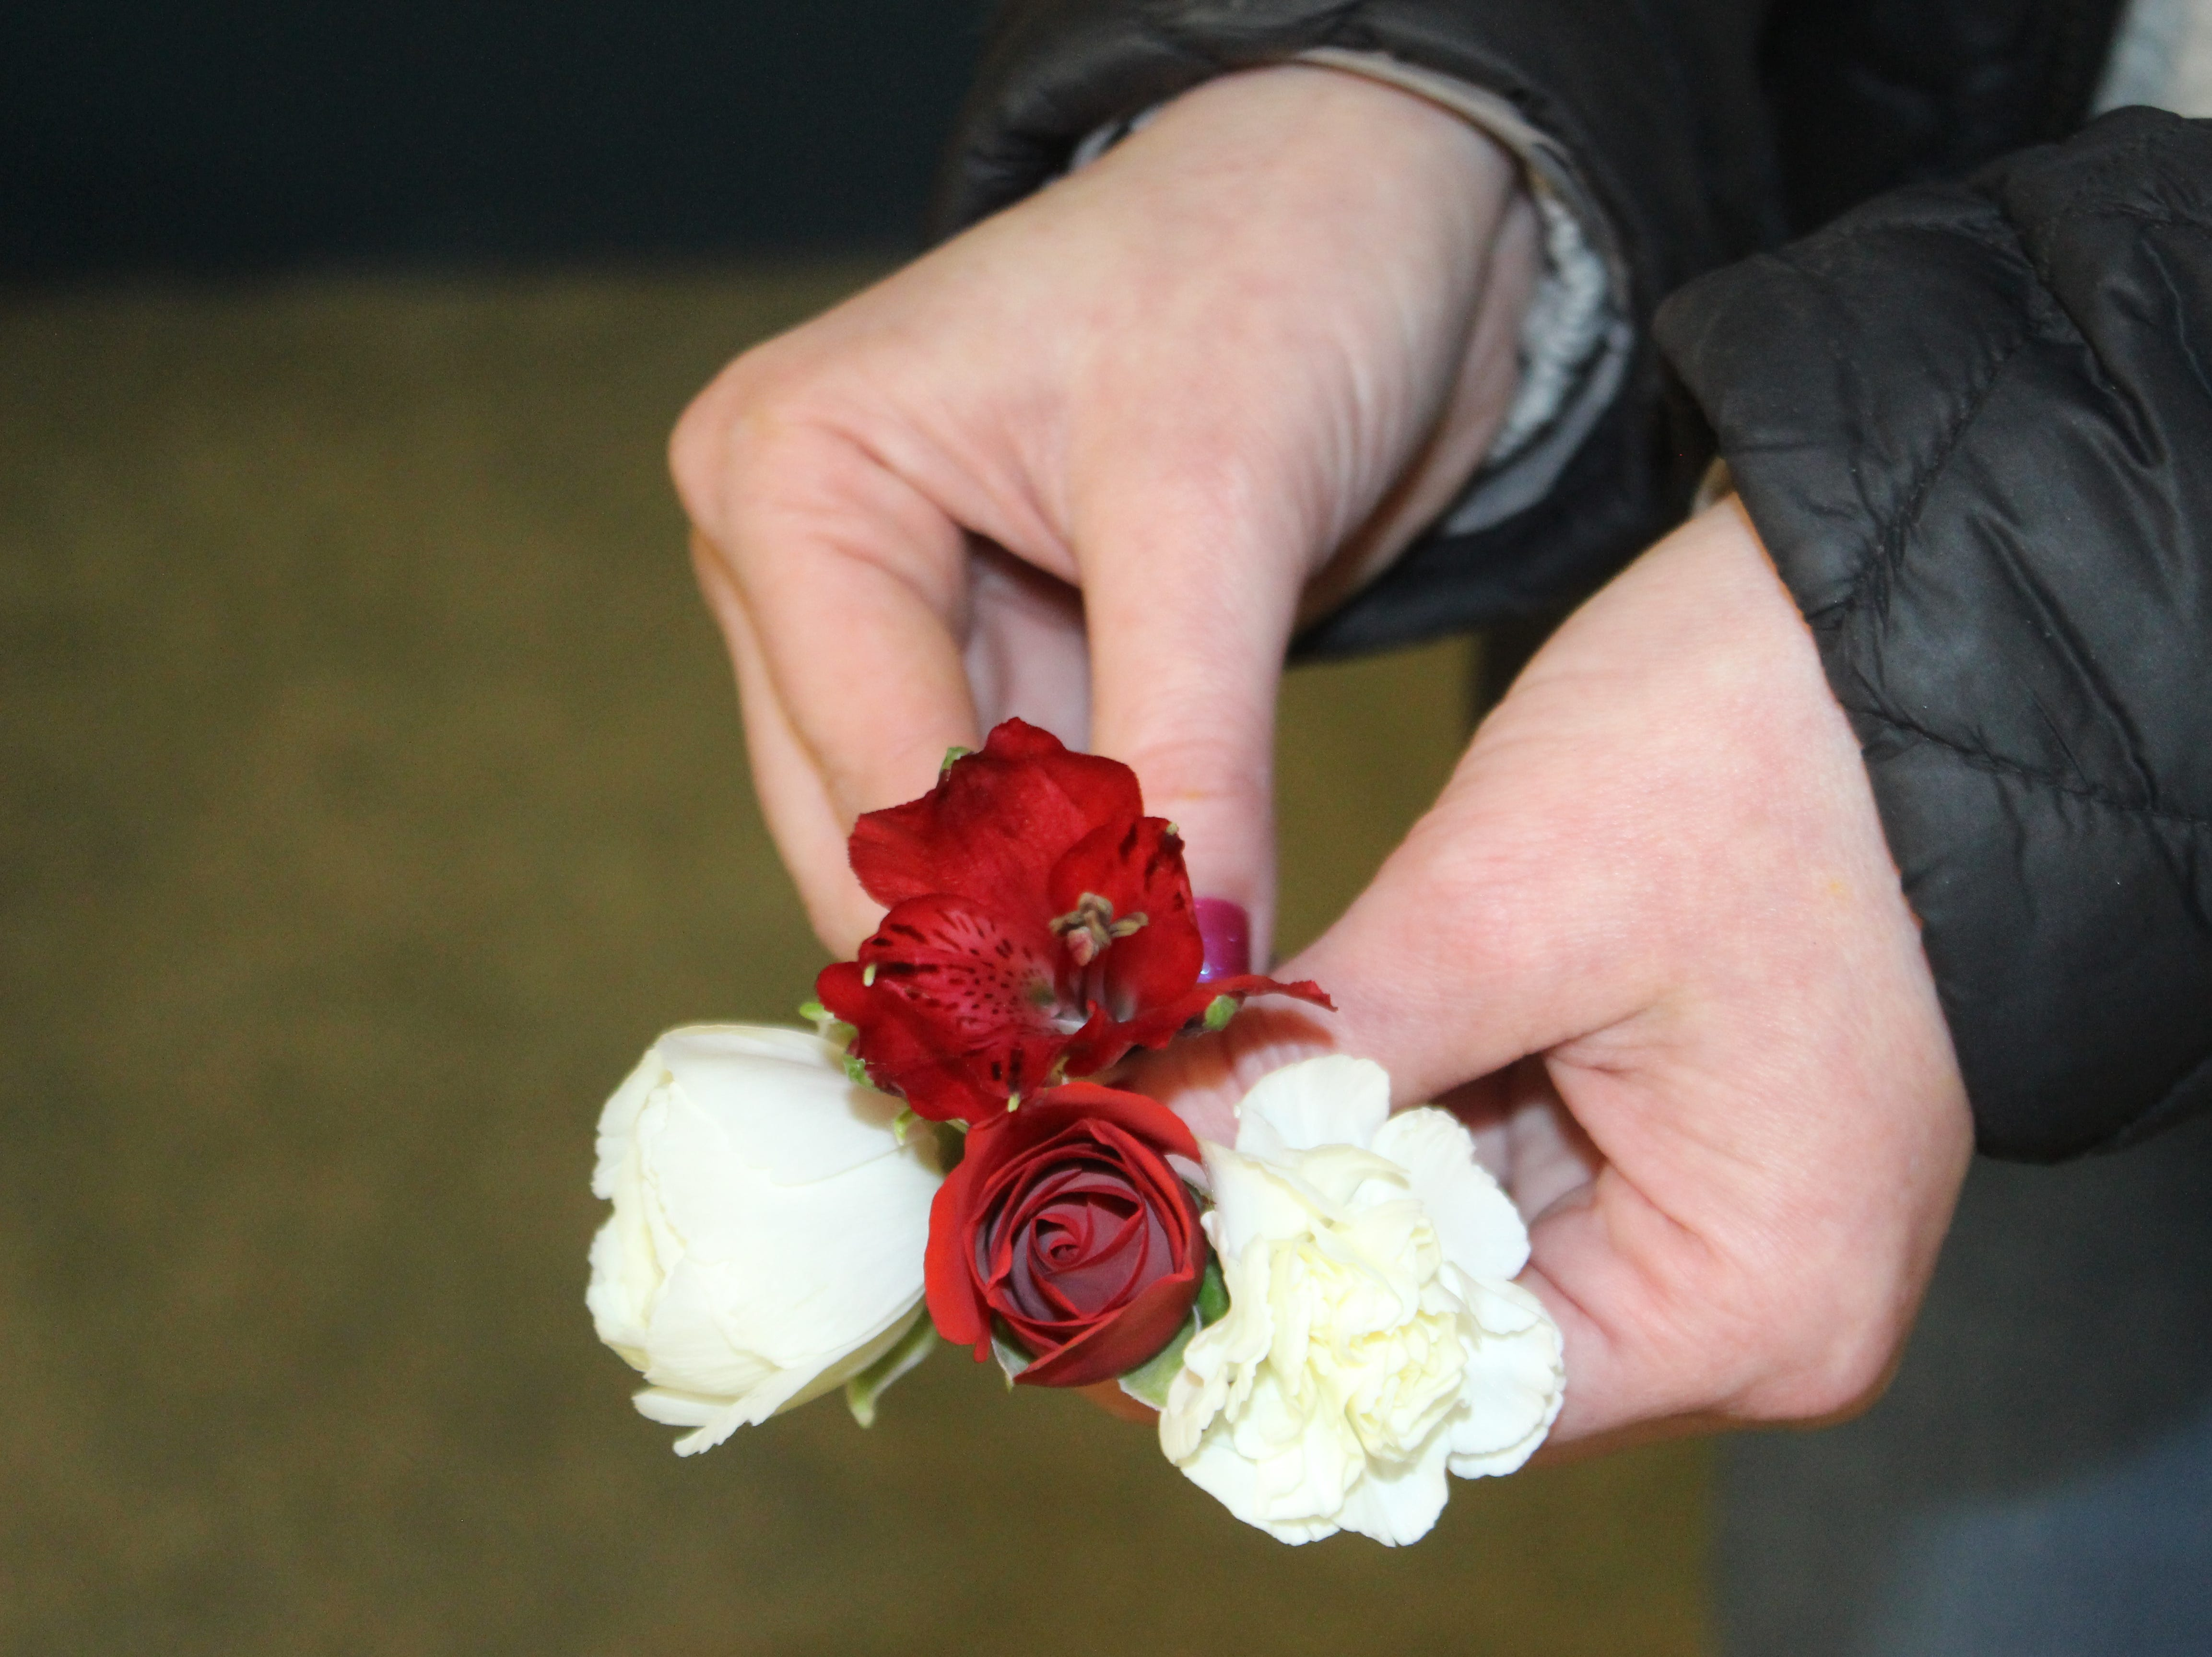 Popular flowers for prom include such choices as spray roses, mini carnations, alstroemeria lilies, and rananculus, shown here by Erica Smith at Hilldale Florist.